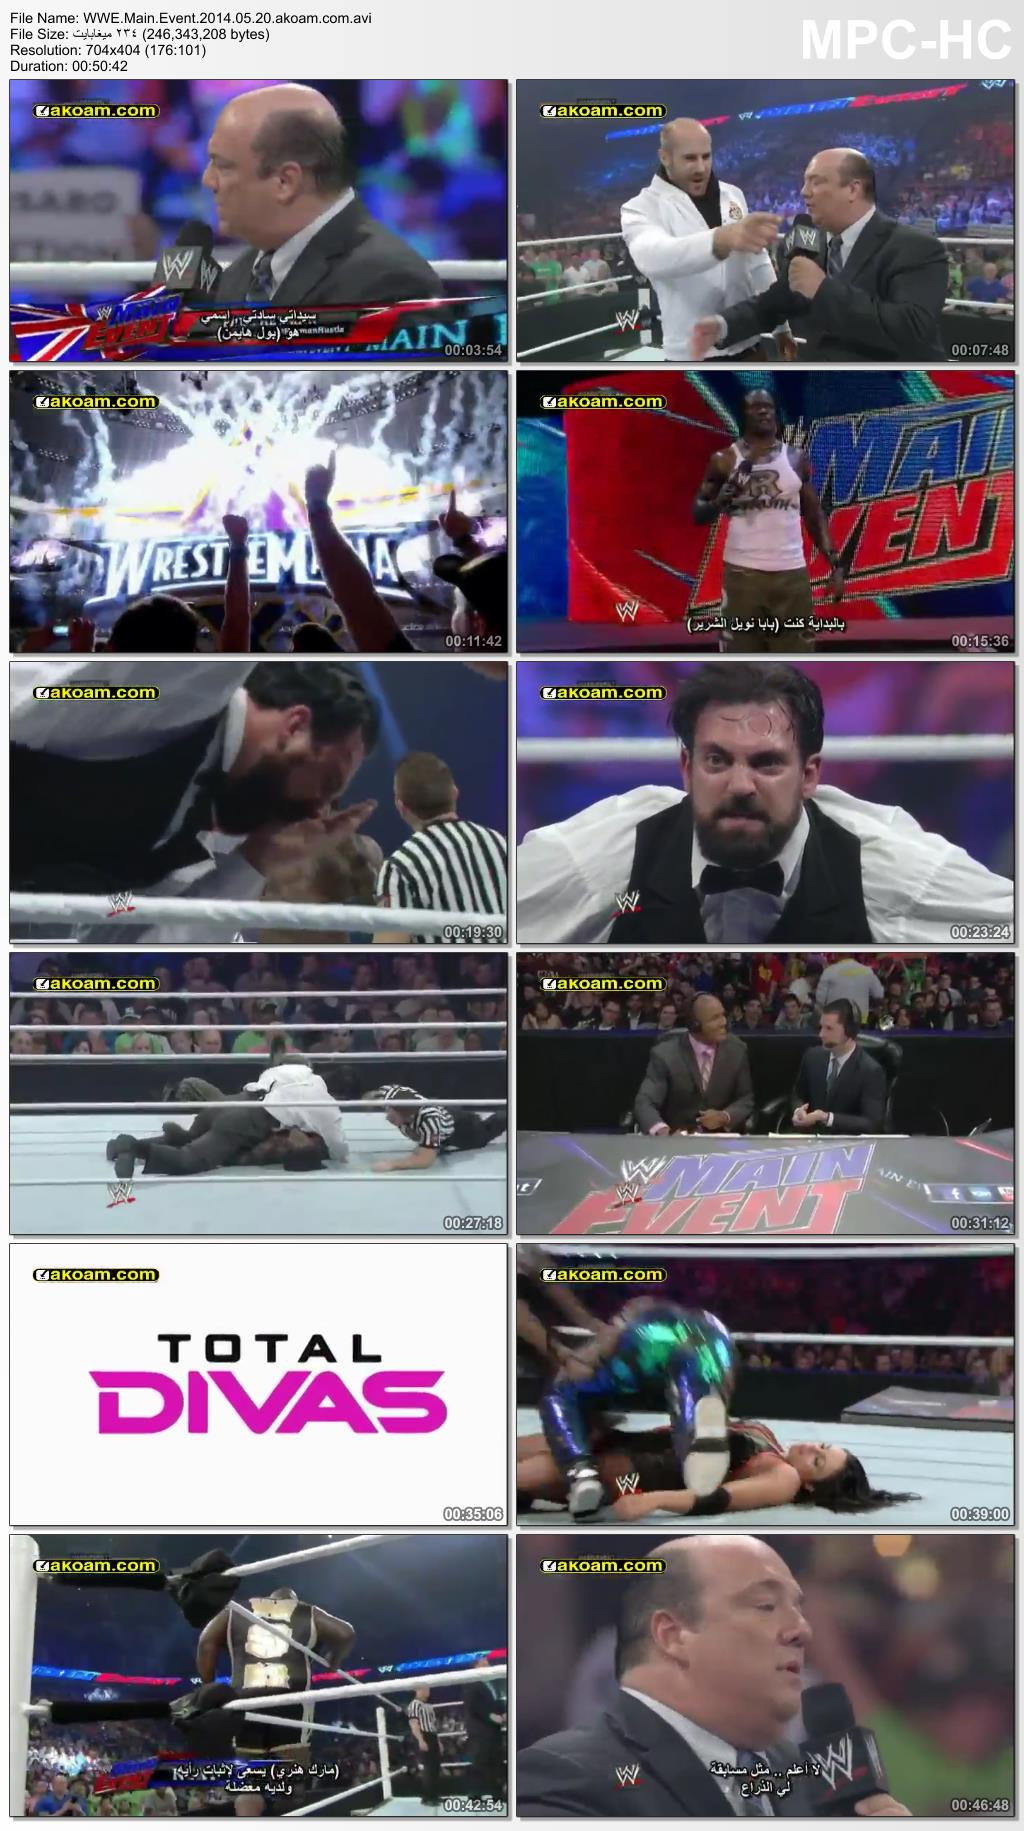 WWE Main Event,Main,Event,الأسبوعي,Event,جون سينا,ترابل اتس,الروو,مين ايفنت,سماك داون,سماك داوون